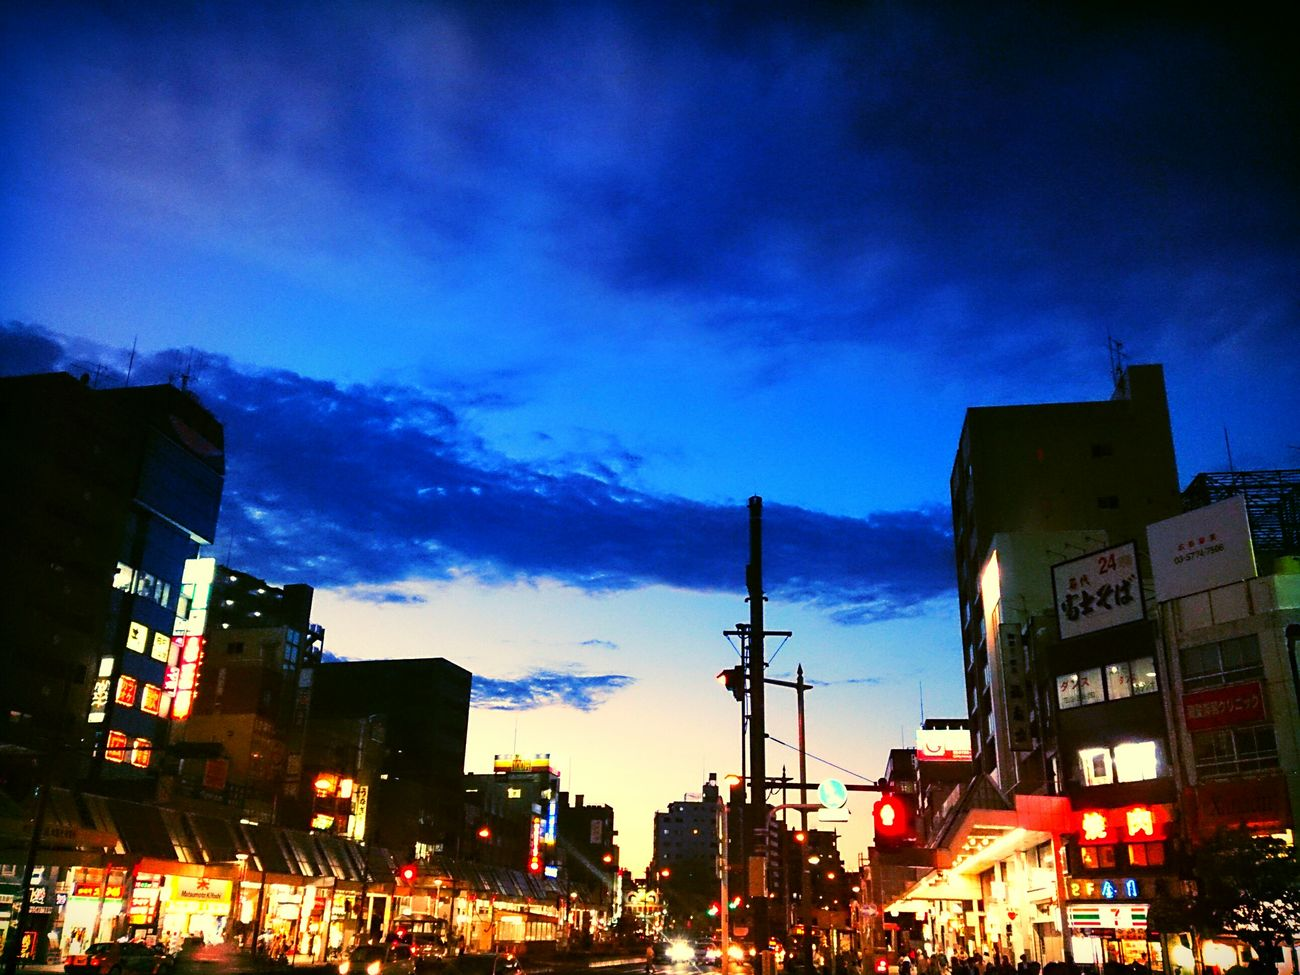 蒼い夜へSky_collection Sunset Streetphotography My Hometown